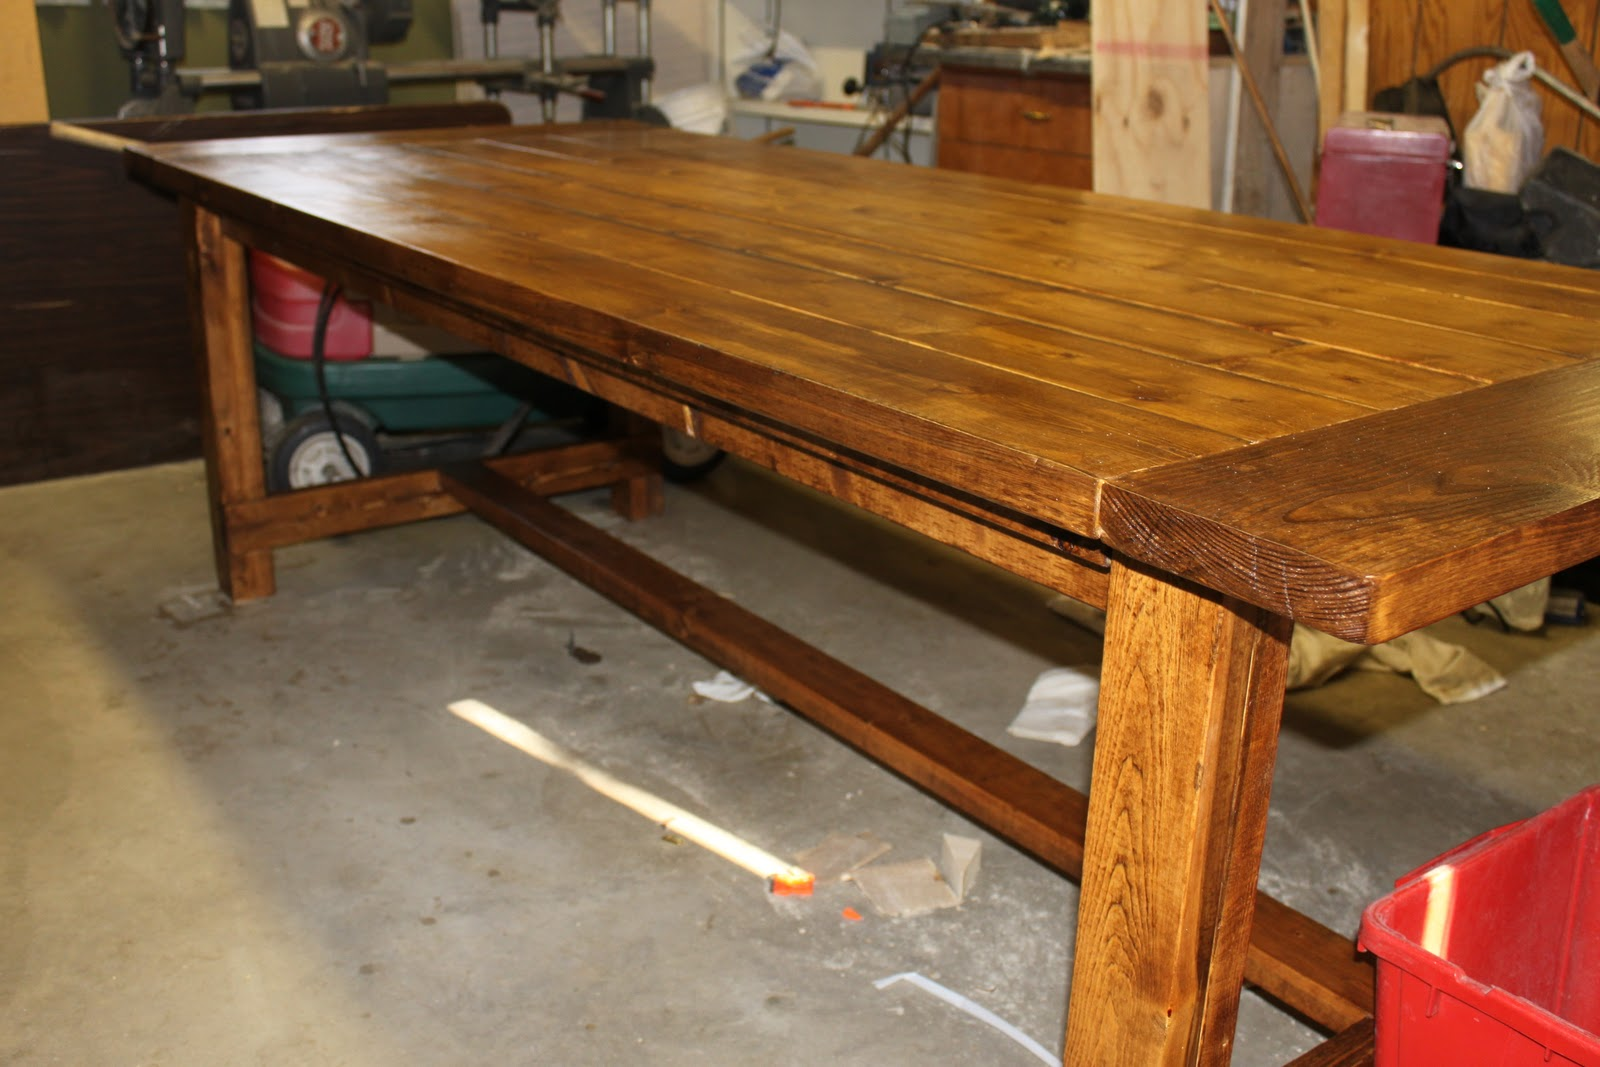 Make a table for your dining room sidetracked sarah Table making ideas